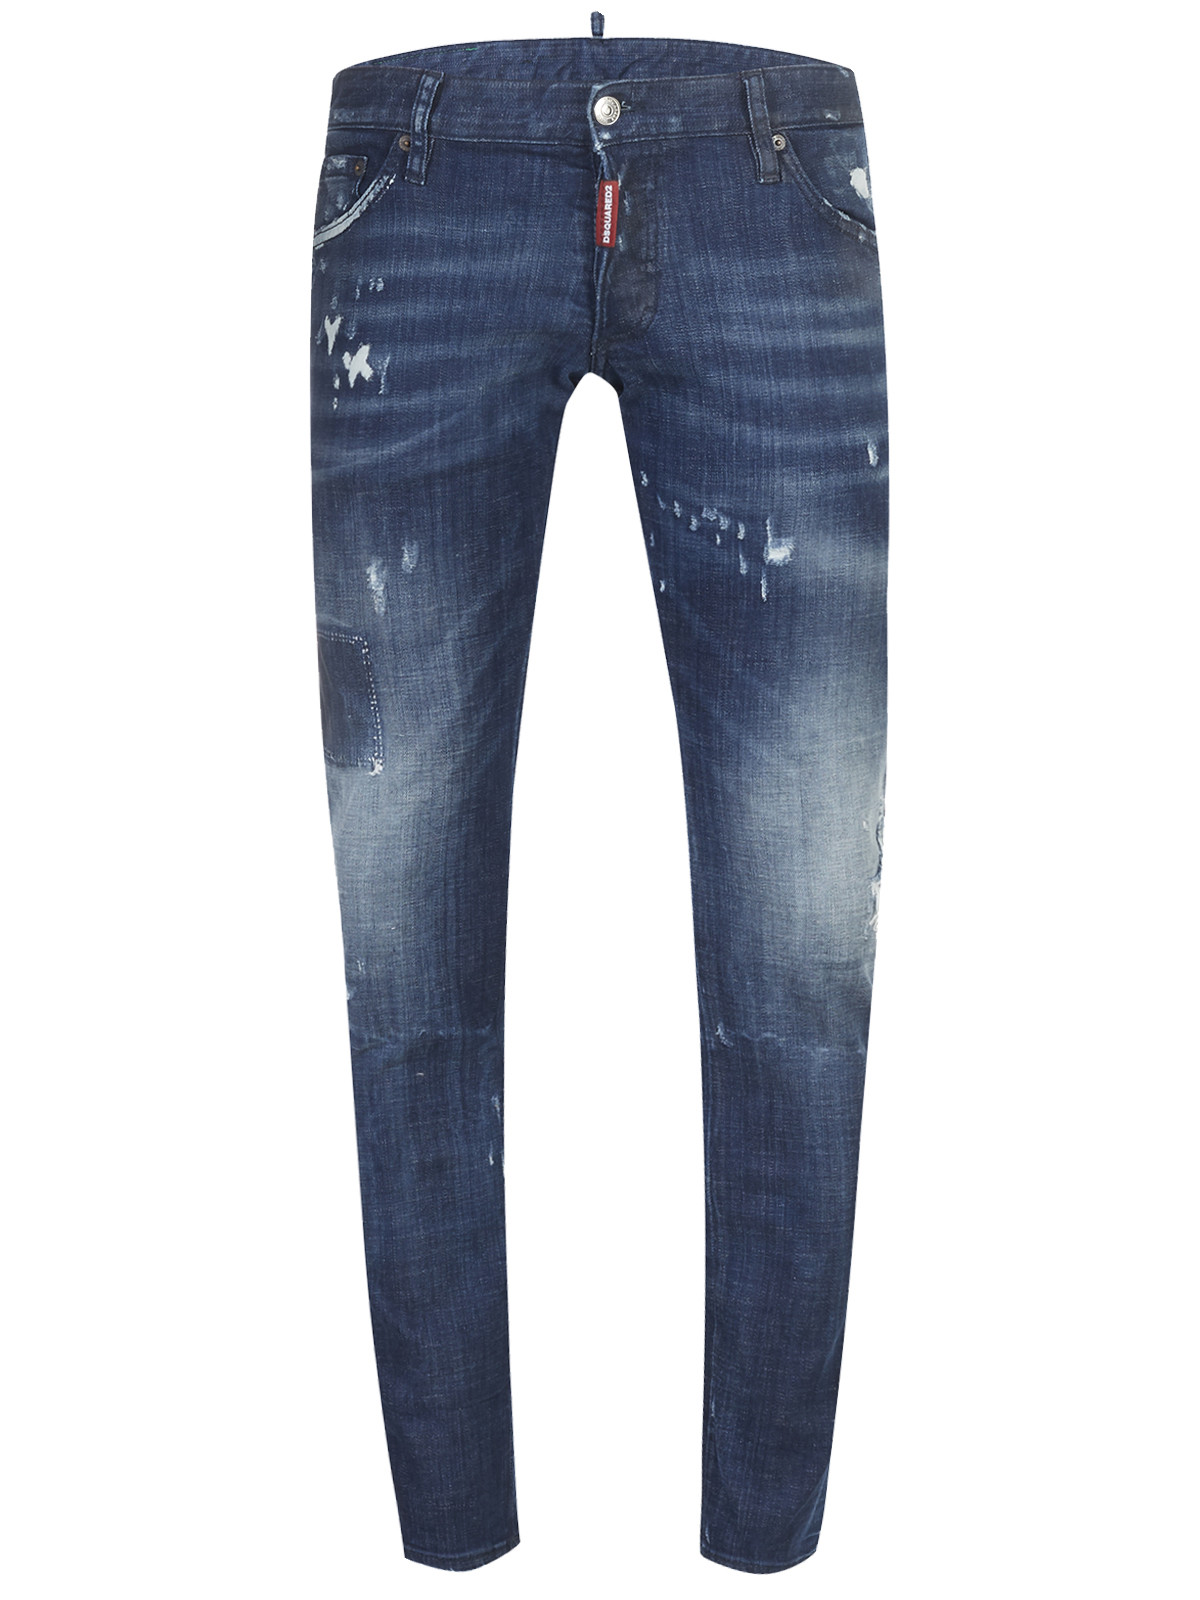 8d3df7539aee Dsquared Jeans